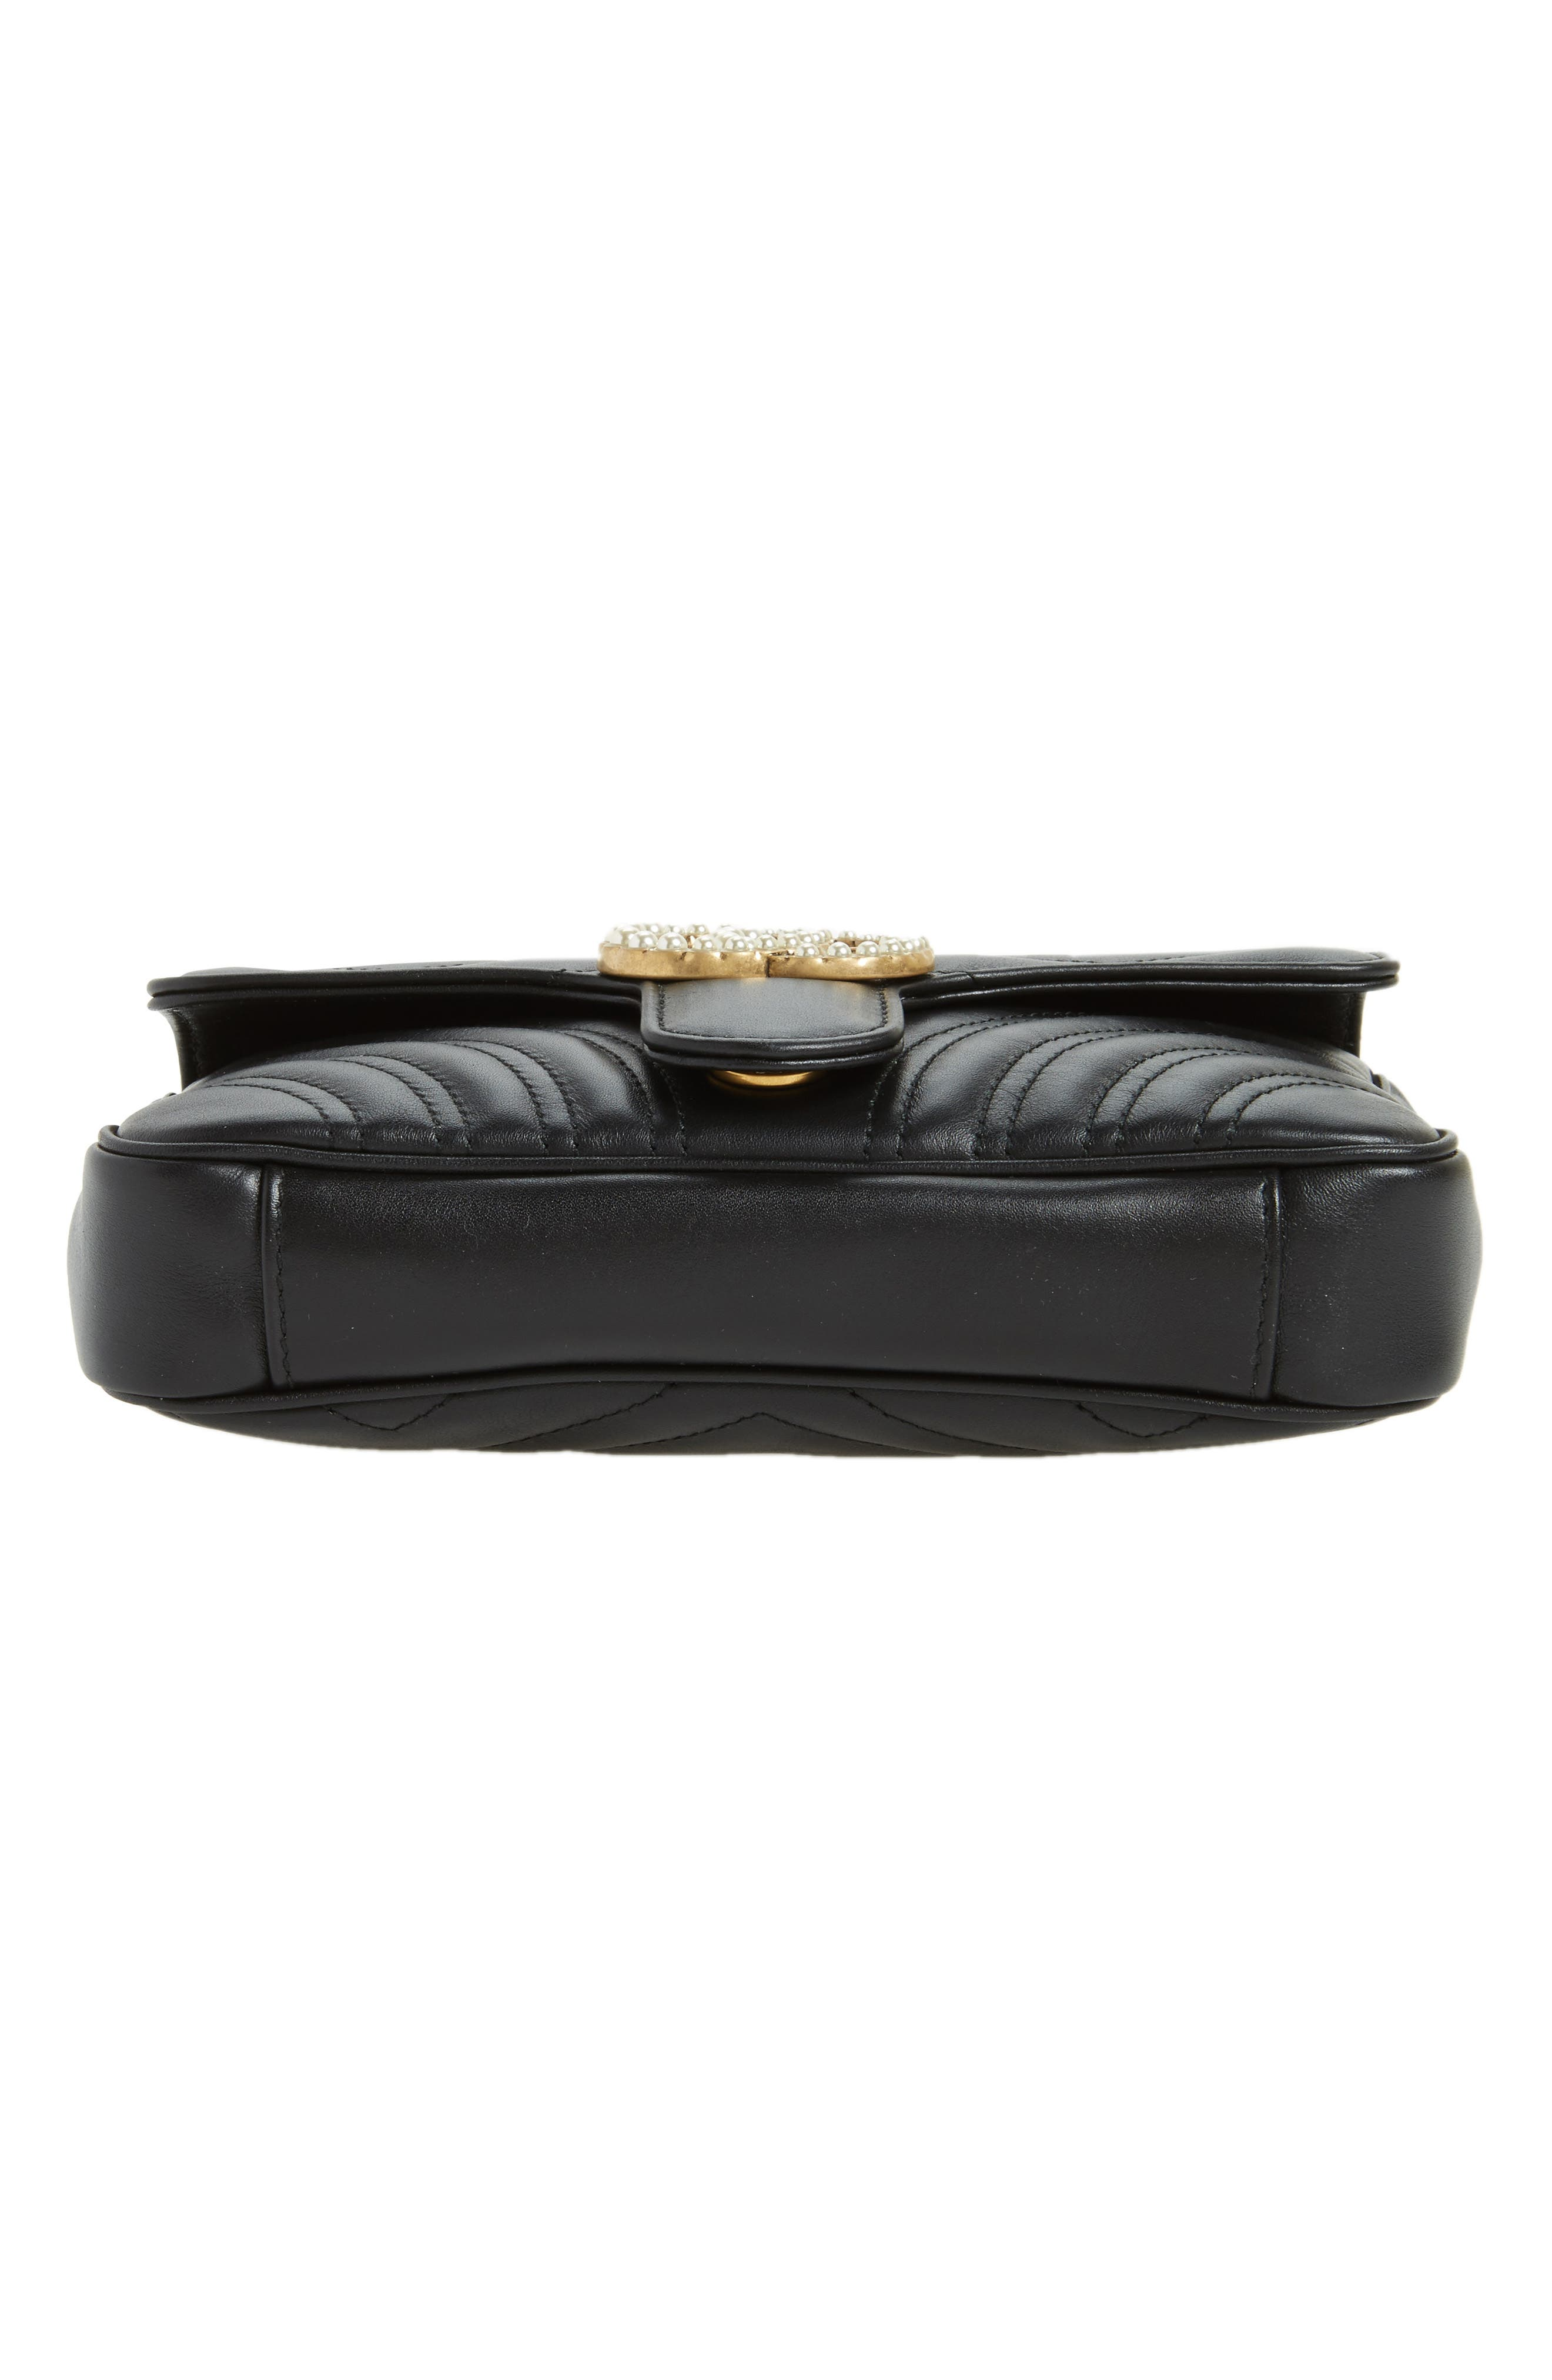 Marmont 2.0 Imitation Pearl Logo Quilted Leather Belt Bag,                             Alternate thumbnail 6, color,                             005